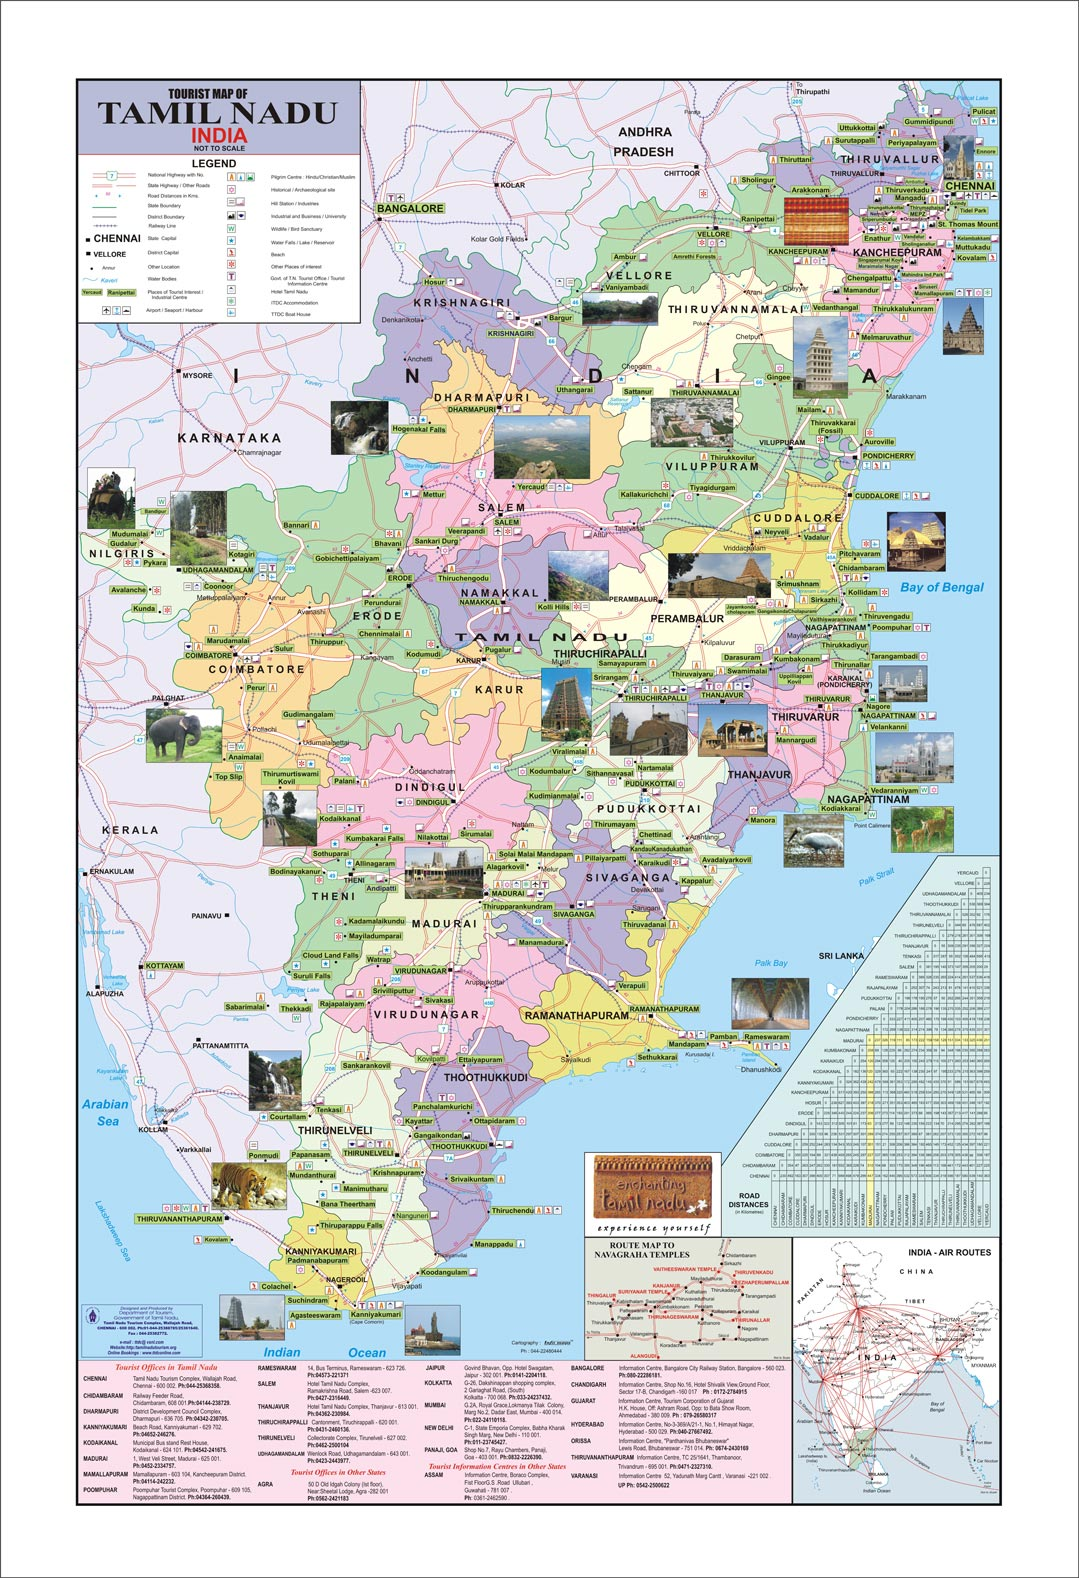 tamilnadu places tamil nadu map tourist tourism south india temples tours maps madurai history ttdc tour tamilnadutourism spots indian corporation